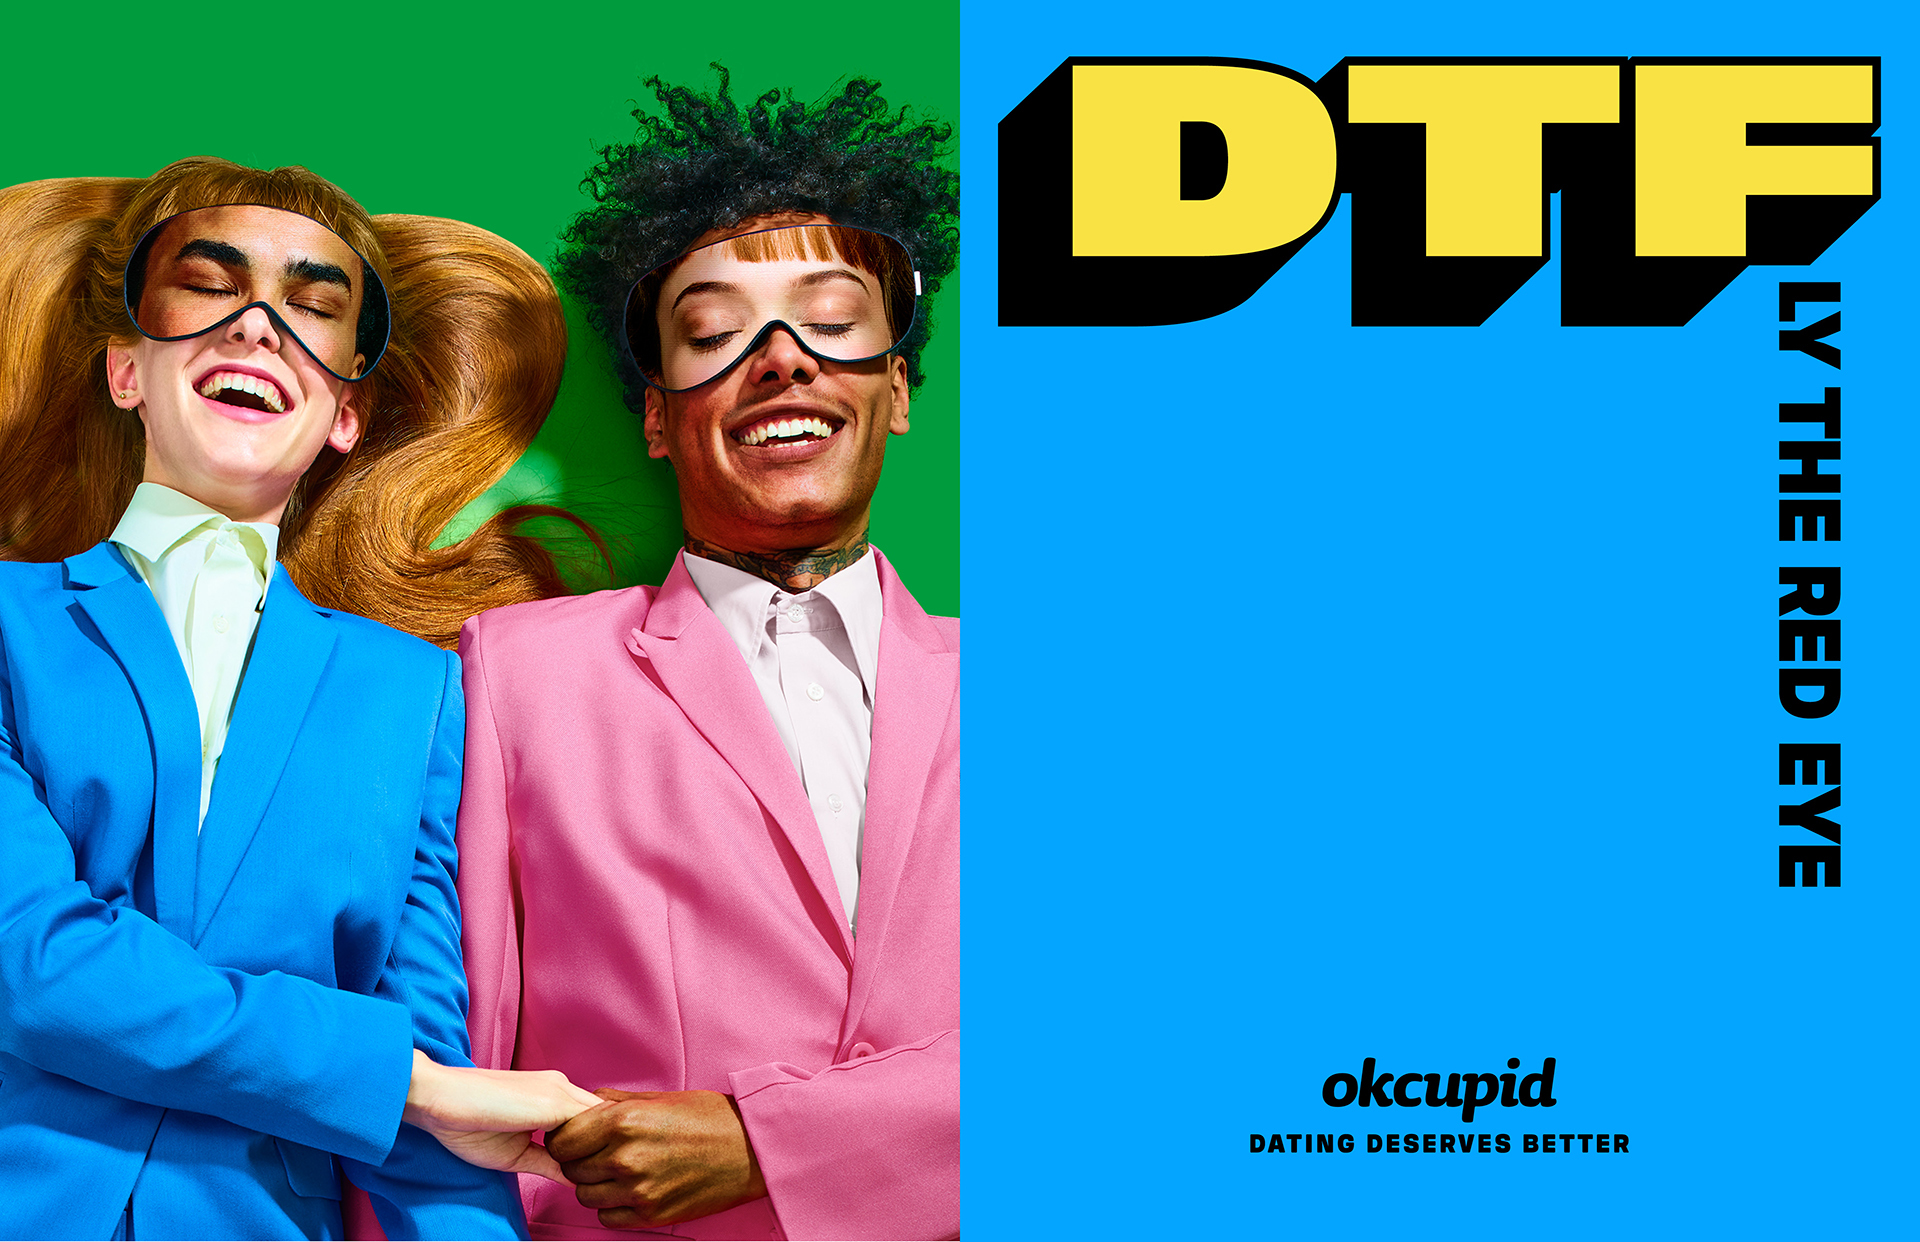 Only dtf dating